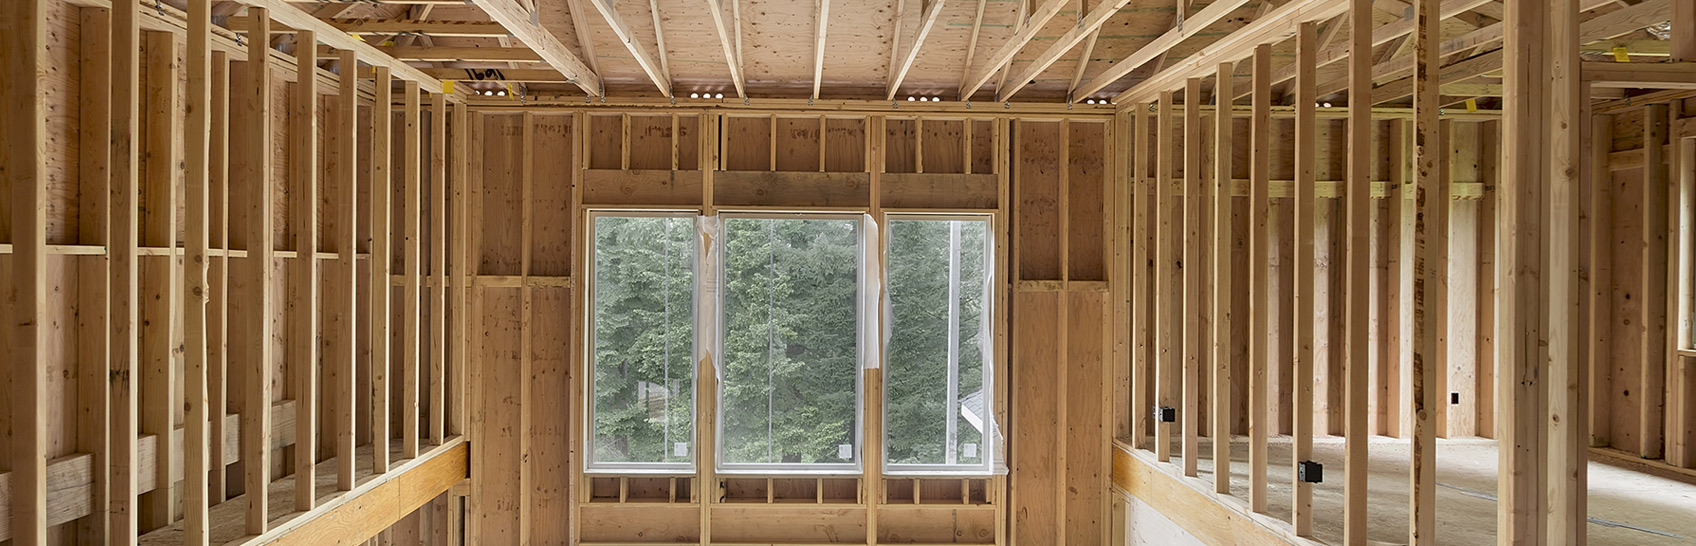 New construction homes for sale in vermont for Building a house in vermont